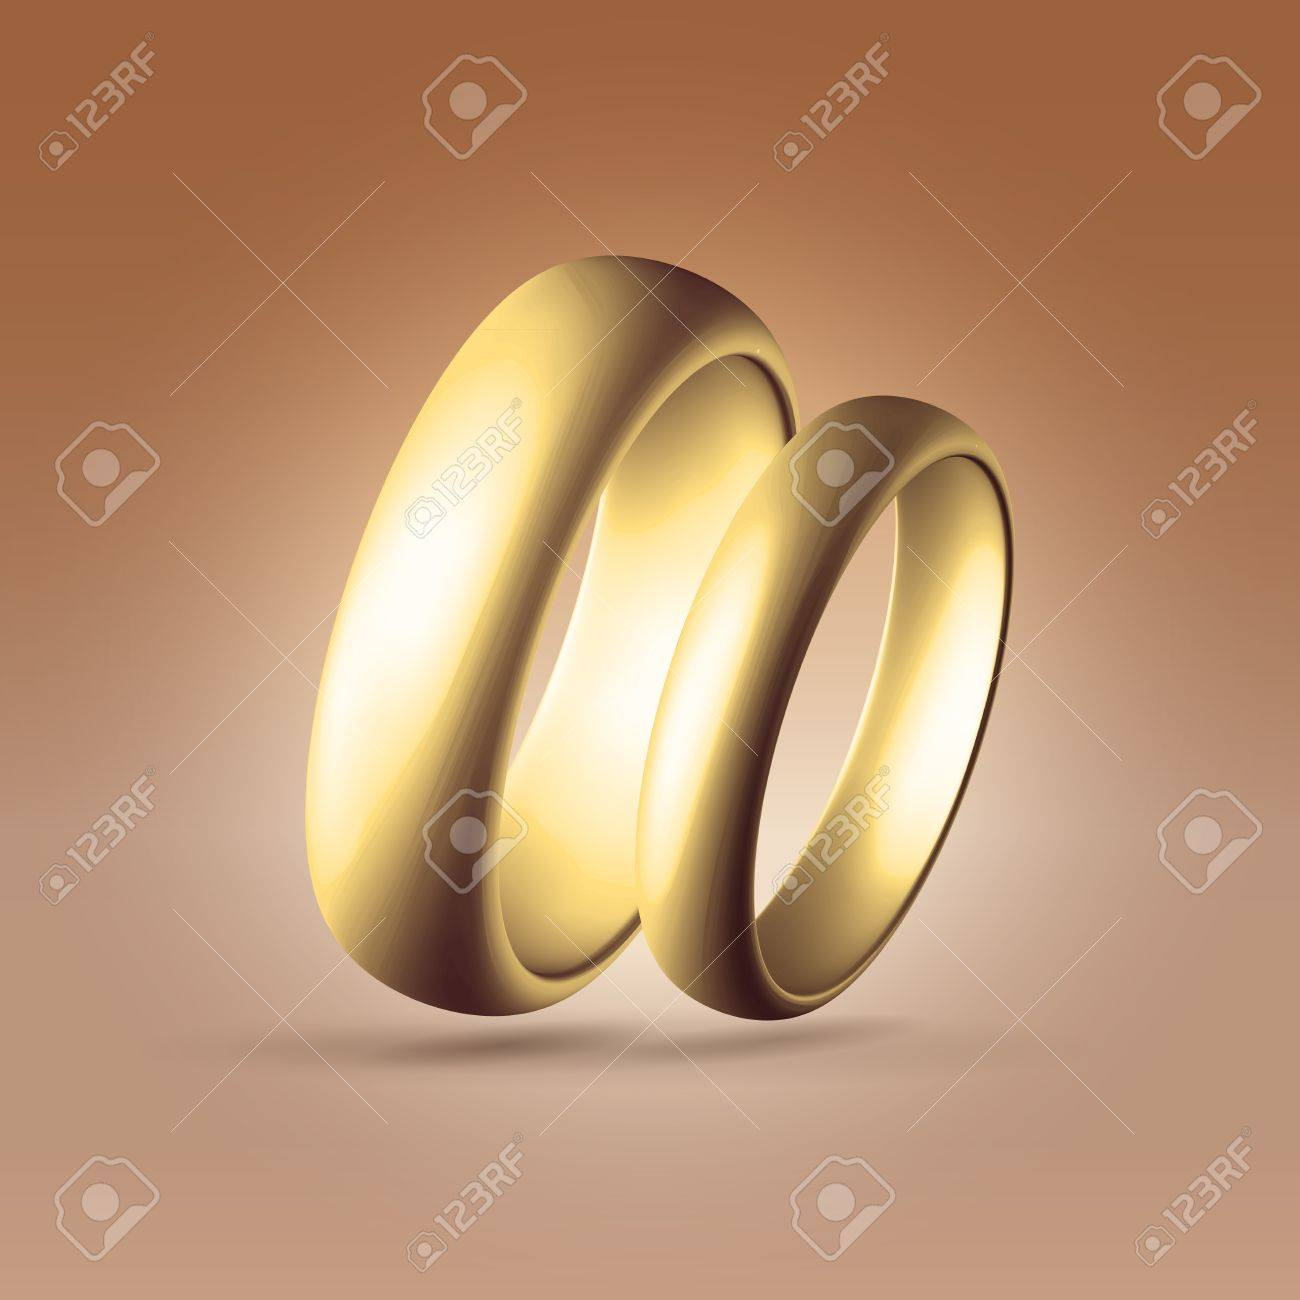 Golden Glossy Wedding Band Simple Curved Couple Of Rings Heart Stock Photo Picture And Royalty Free Image Image 20509964